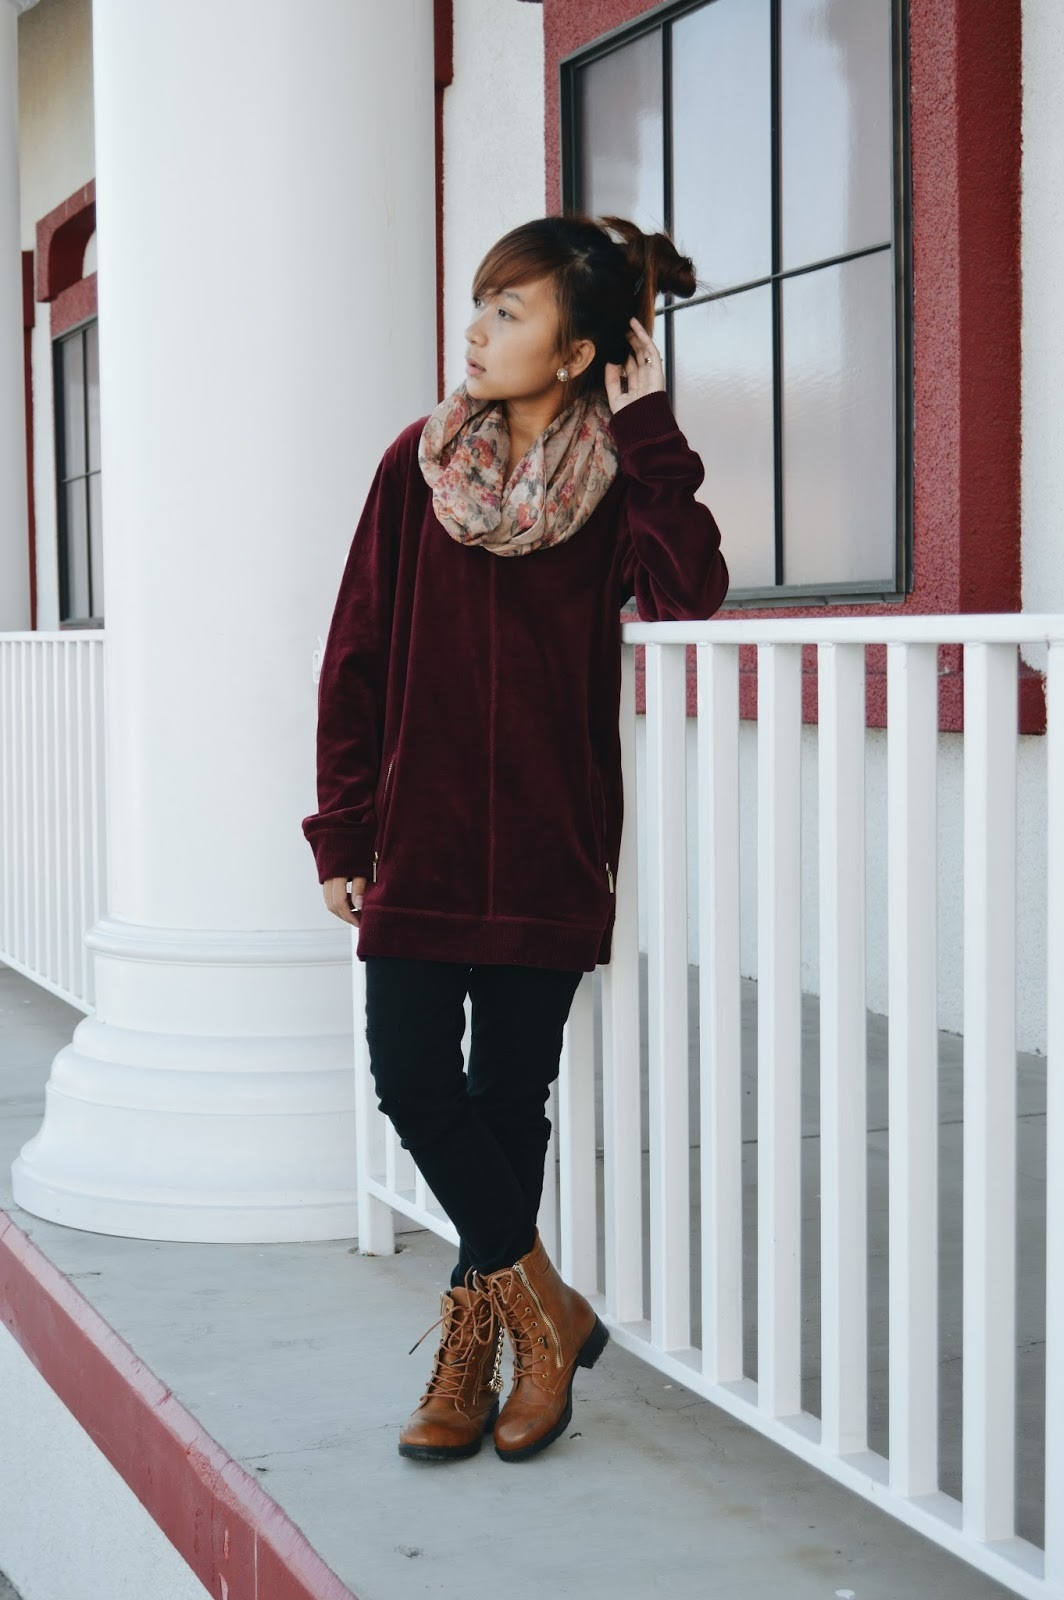 How to Wear a Burgundy Oversized Sweater (24 looks) | Women's Fashion